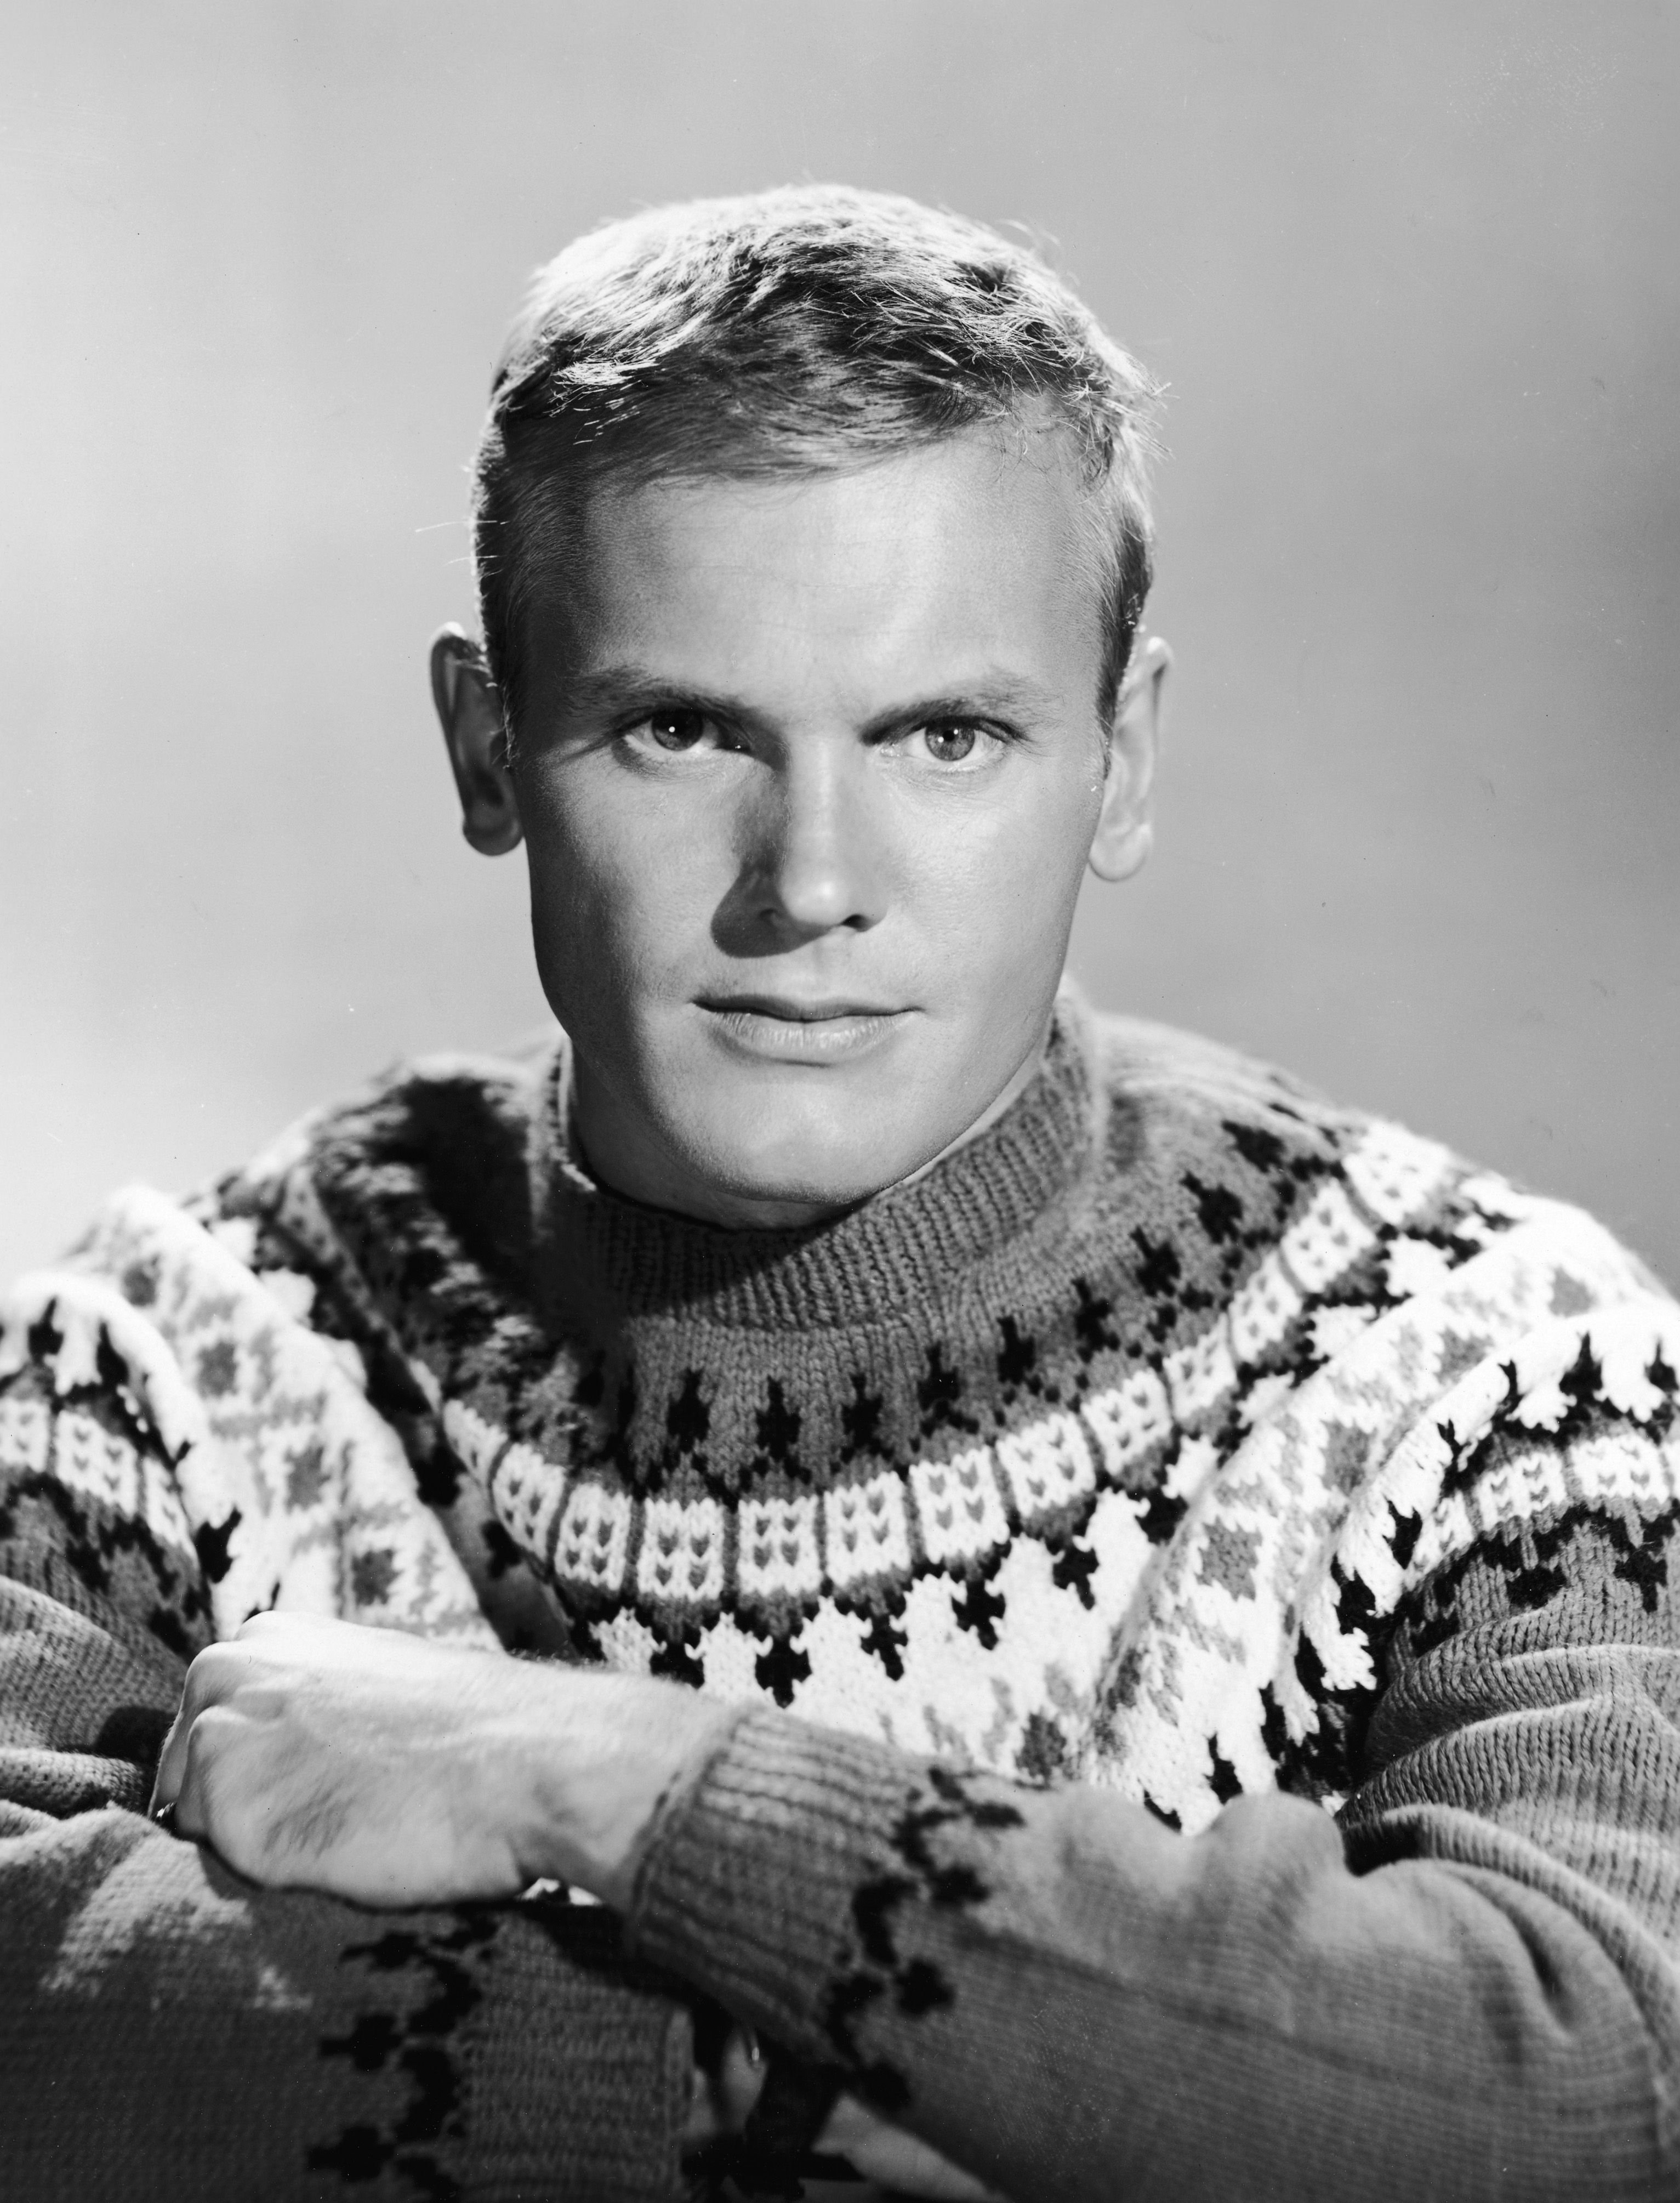 """Tab Hunter wearing a ski sweater in a promotional portrait for """"The Tab Hunter Show"""" in 1960 